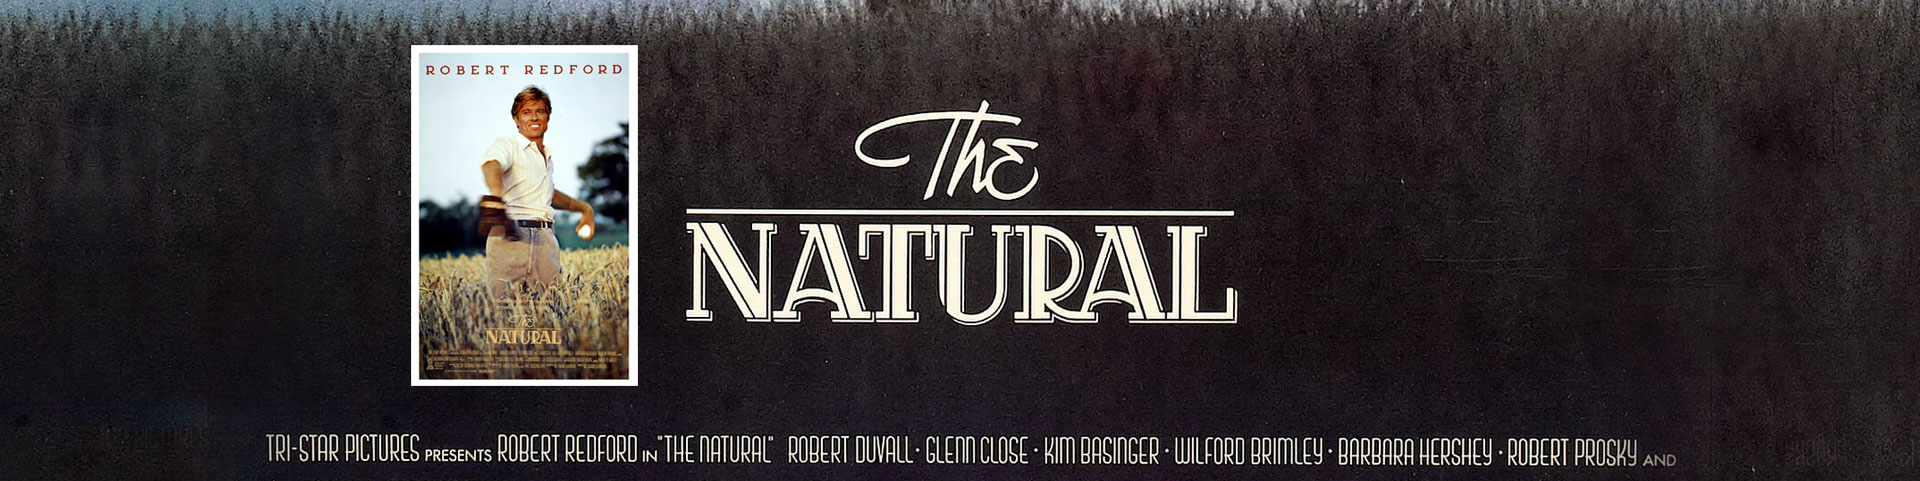 TheNatural